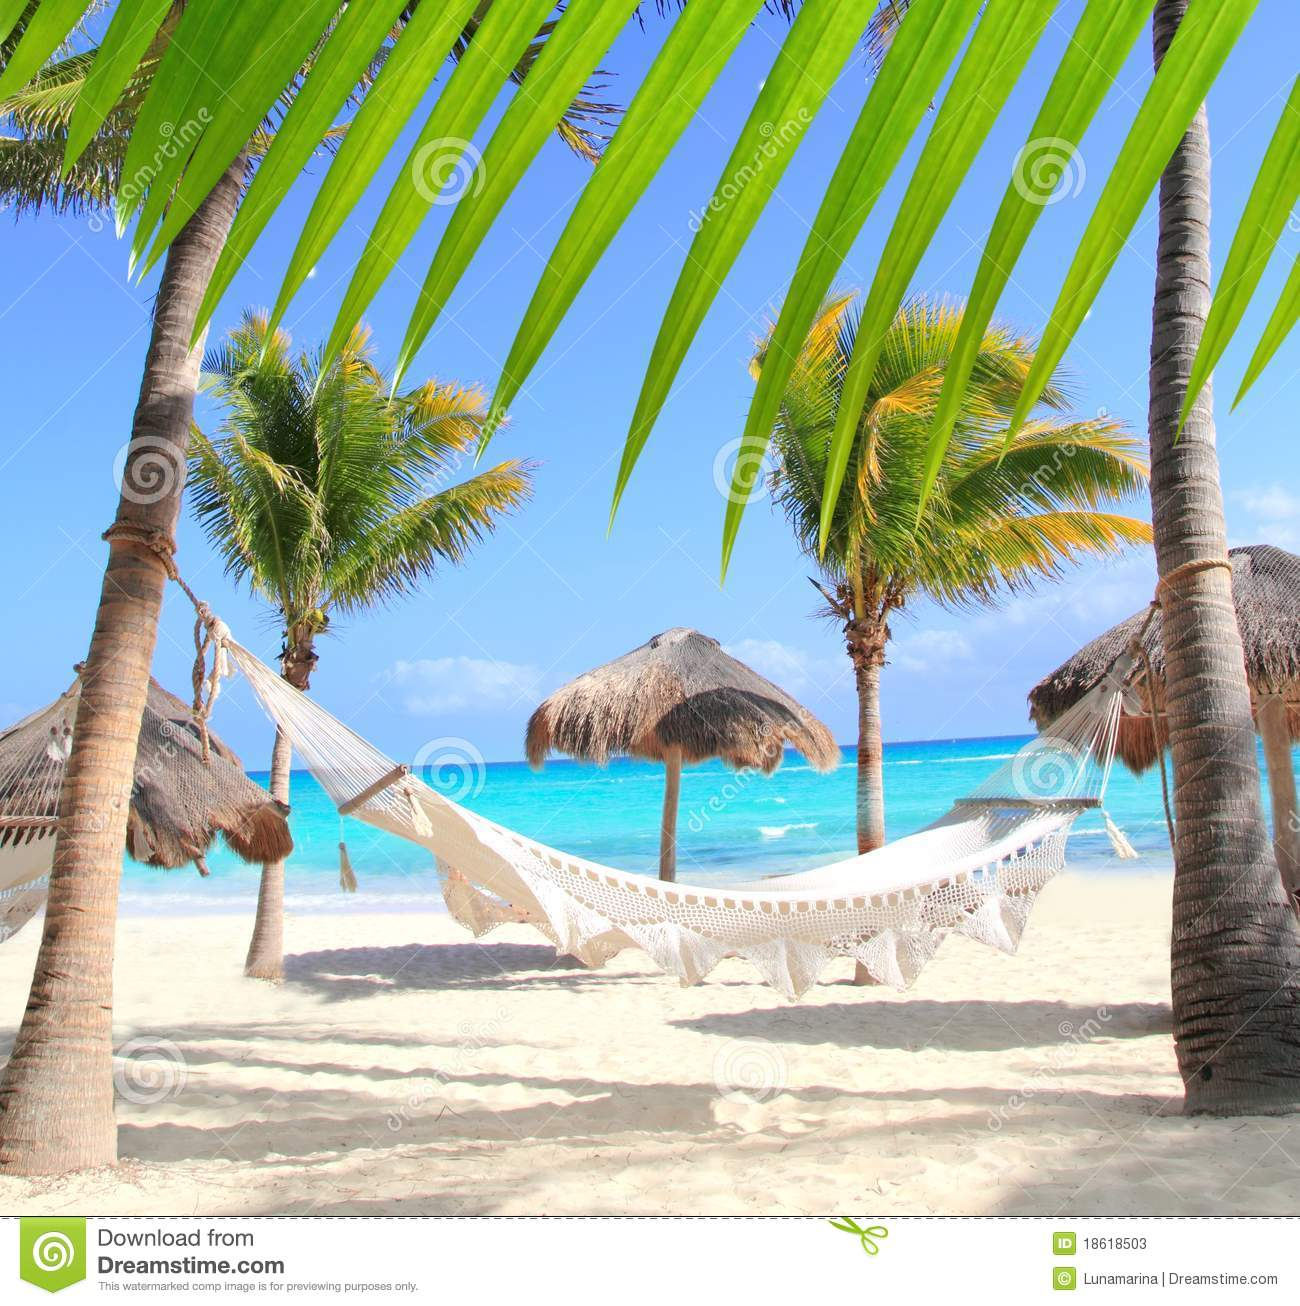 Caribbean beach hammock and palm trees in Mayan Riviera Mexico 1300x1306